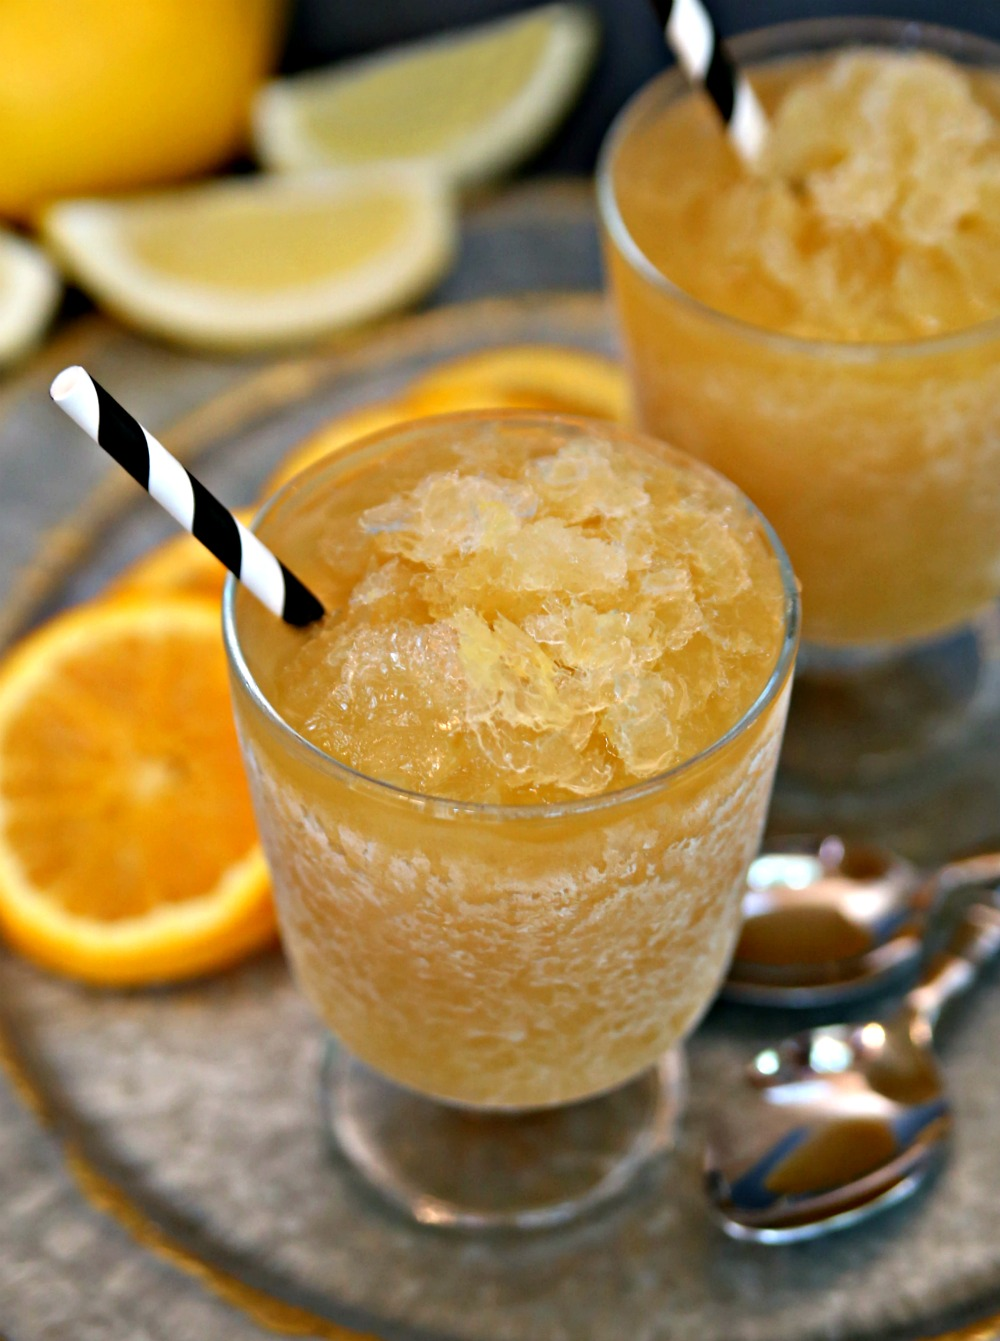 Stay cool this summer with bourbon slush!